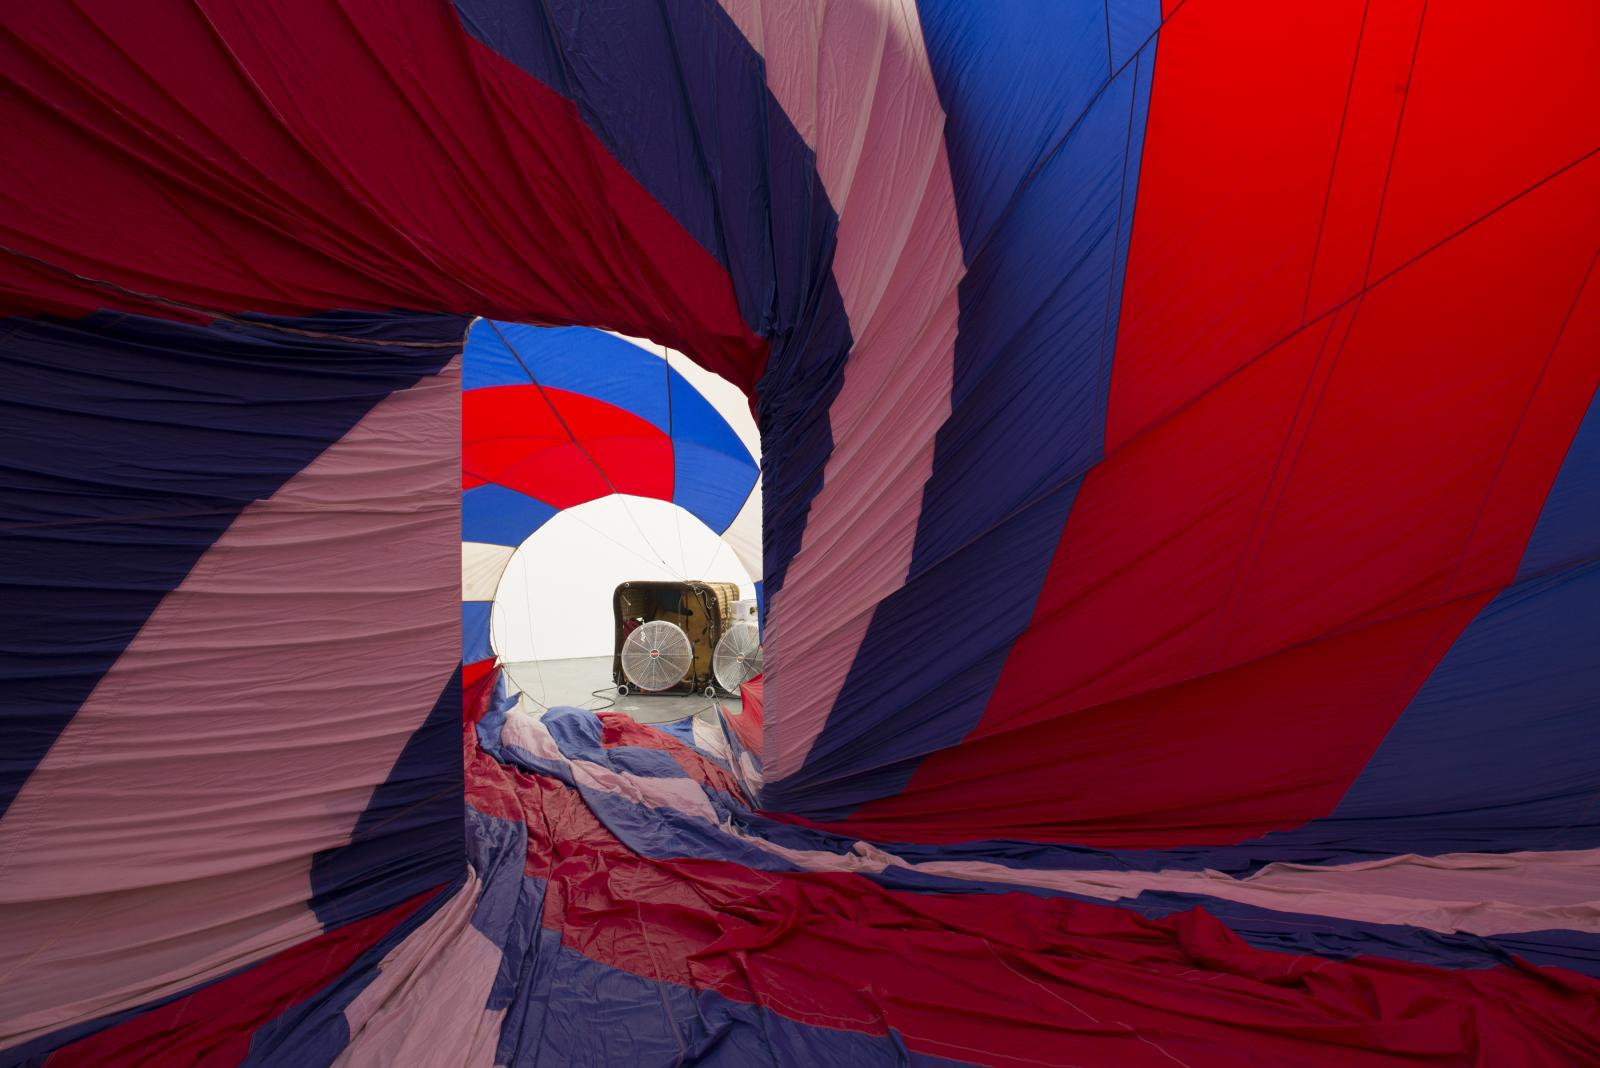 A red, white, and blue fabric canopy presses against walls of room in a spiral; portable fans blow air into the room through a doorway.